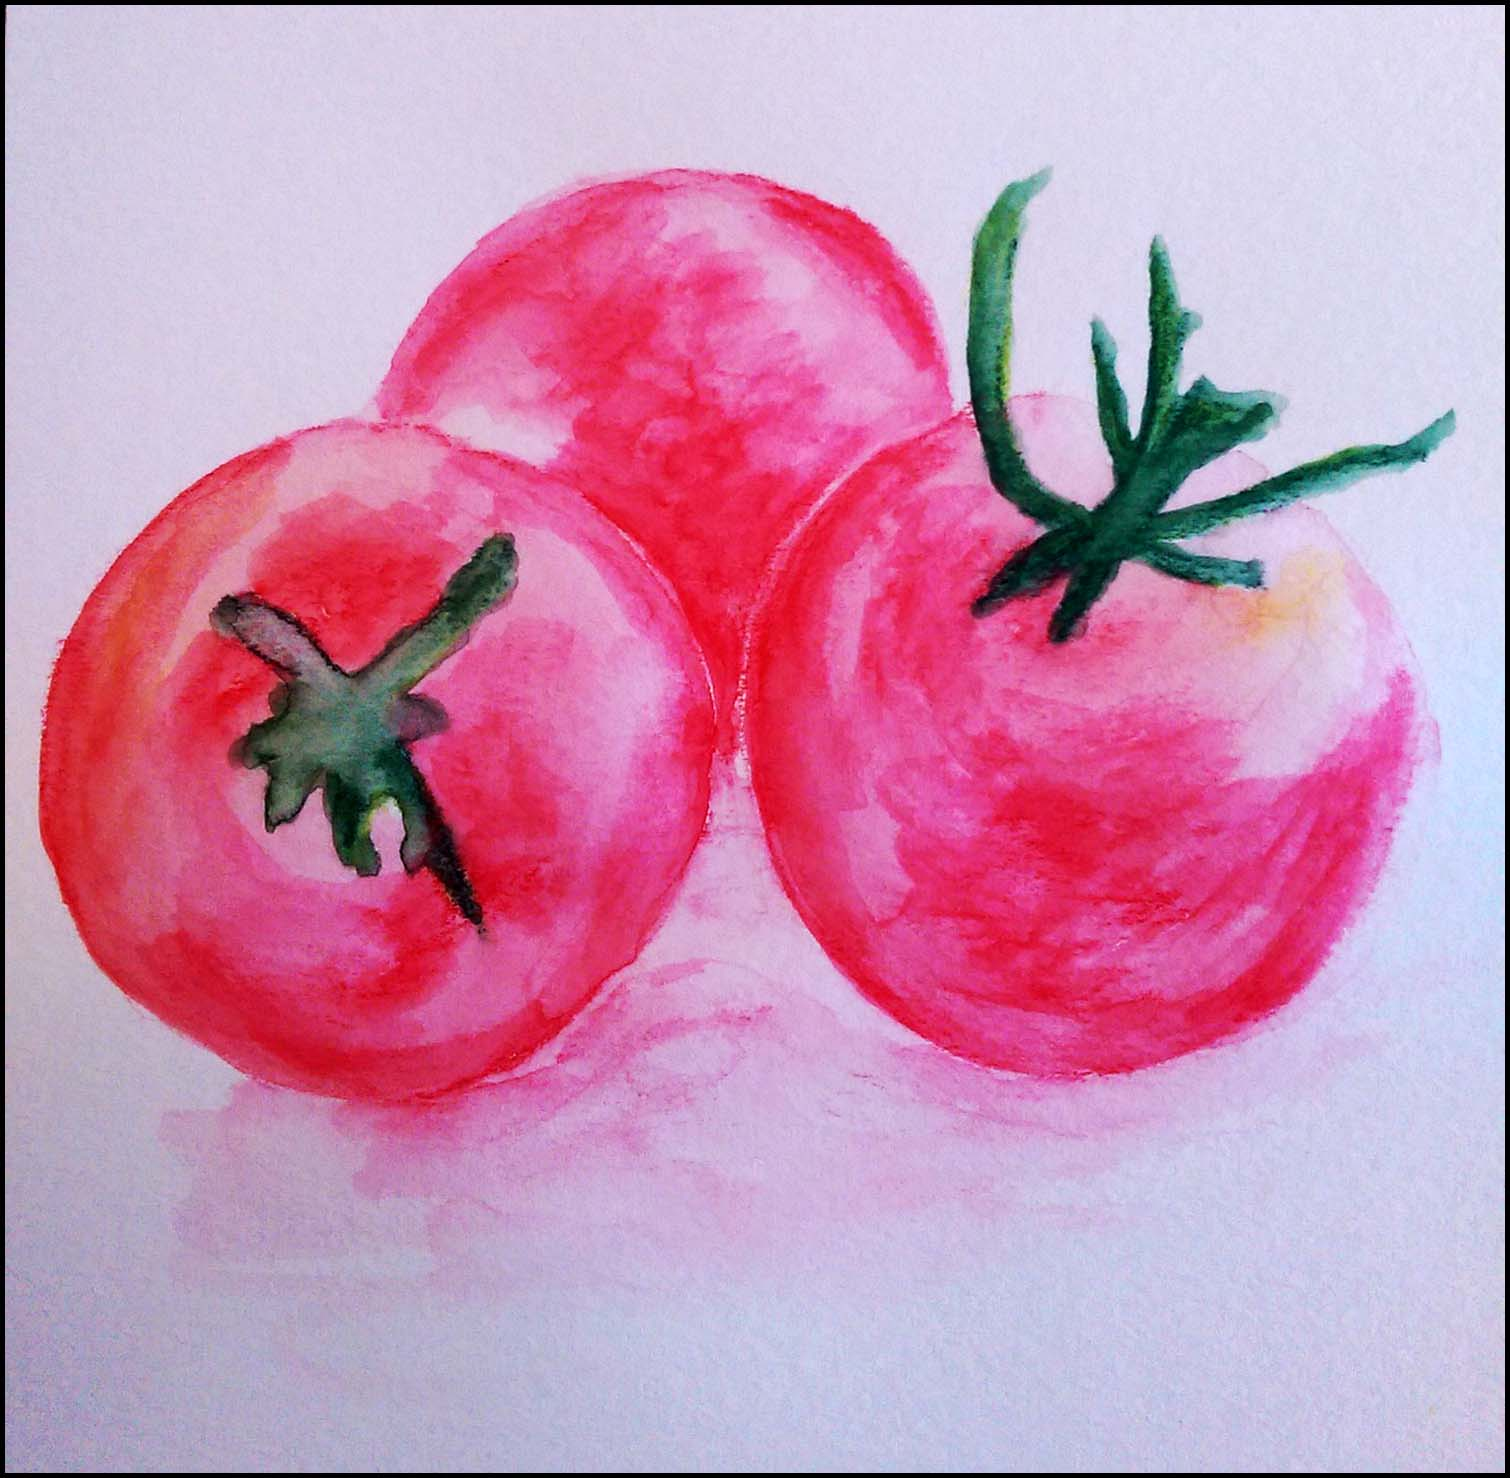 TinkerSketch-tomatoes-in-watercolour.jpg